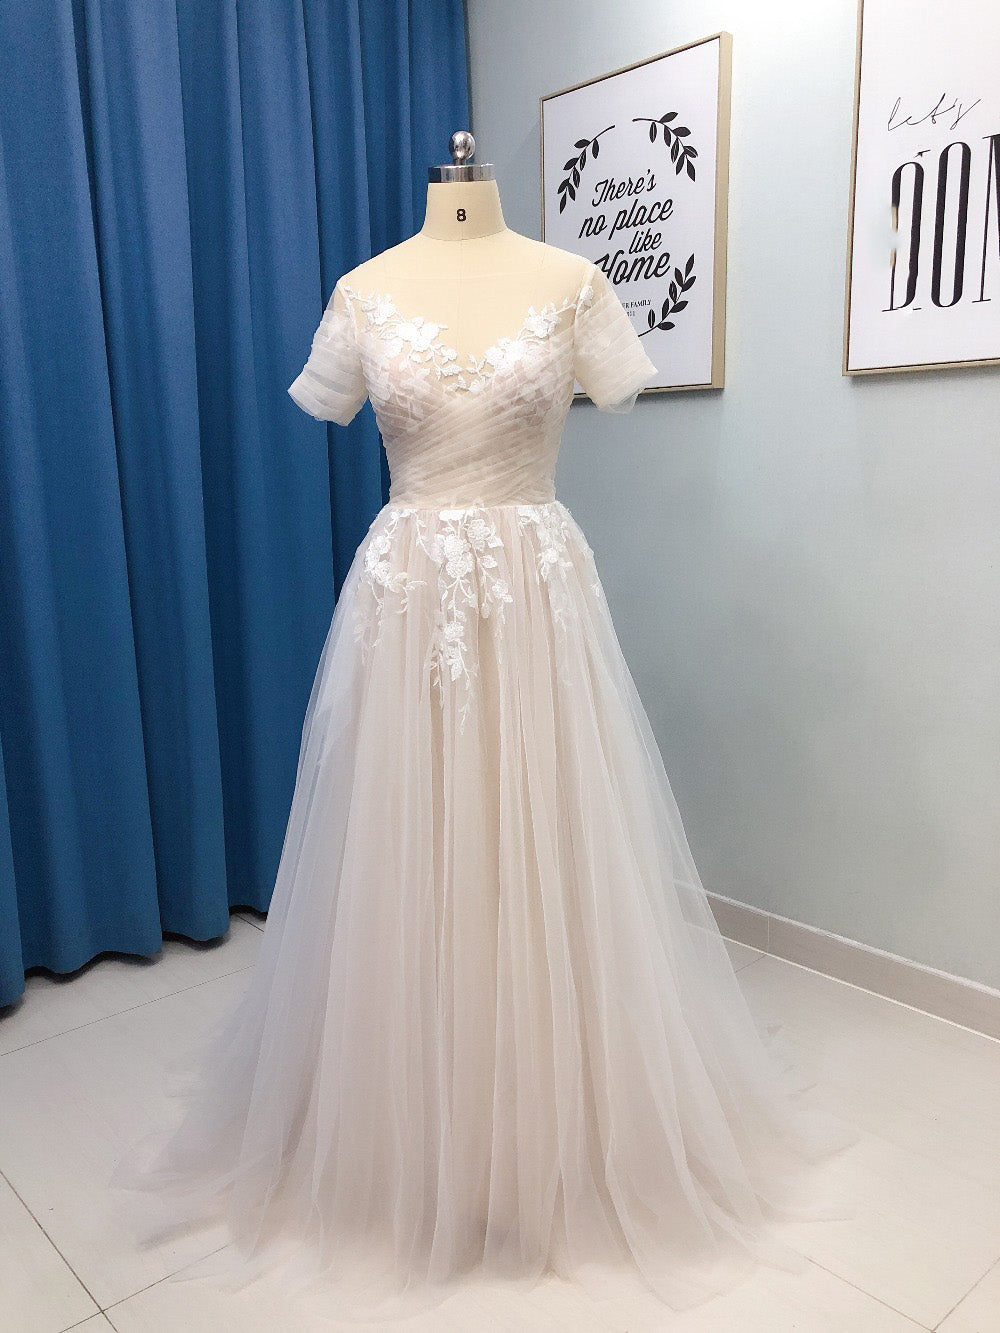 Wd0518 Vintage Simple Elegant Lace Floral Boho Wedding Gown With Short Siaoryne,Formal Dresses For Wedding Guest Plus Size